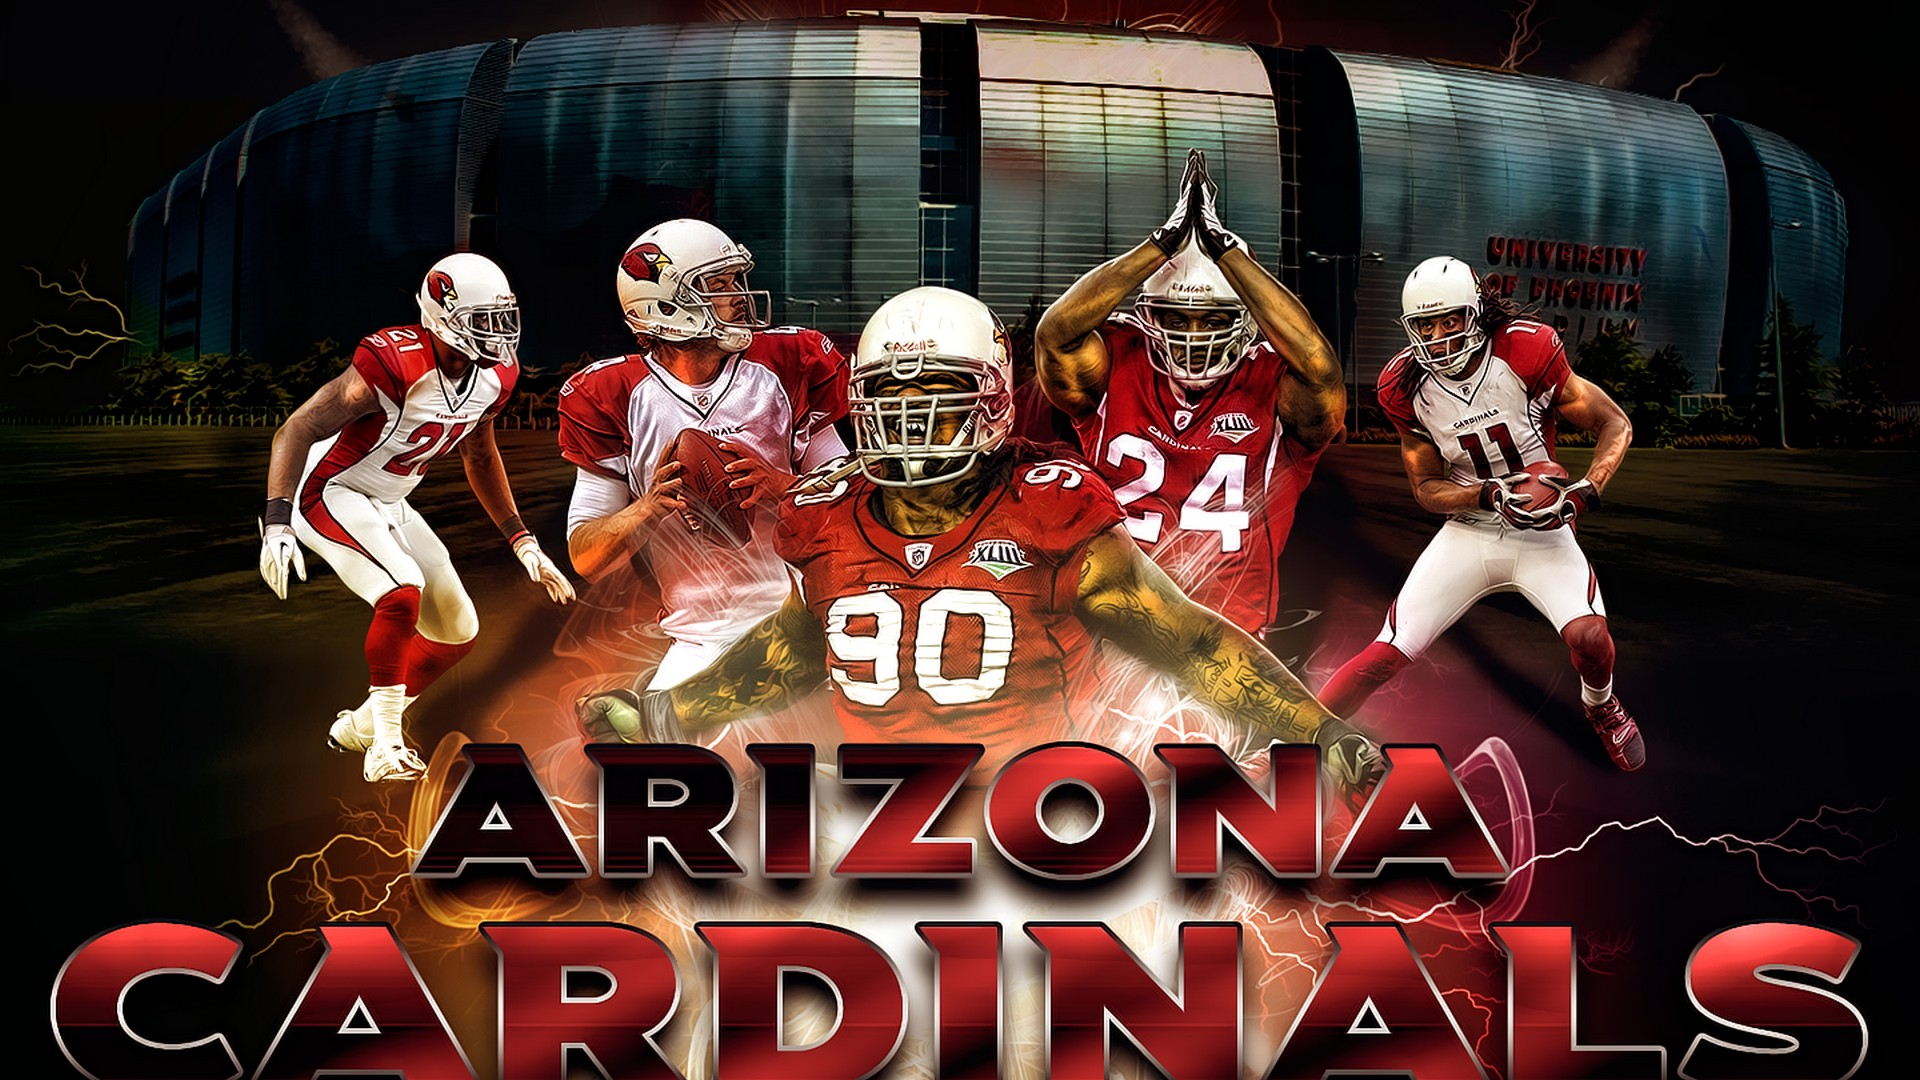 Football Hd Wallpapers For Iphone Arizona Cardinals For Desktop Wallpaper 2019 Nfl